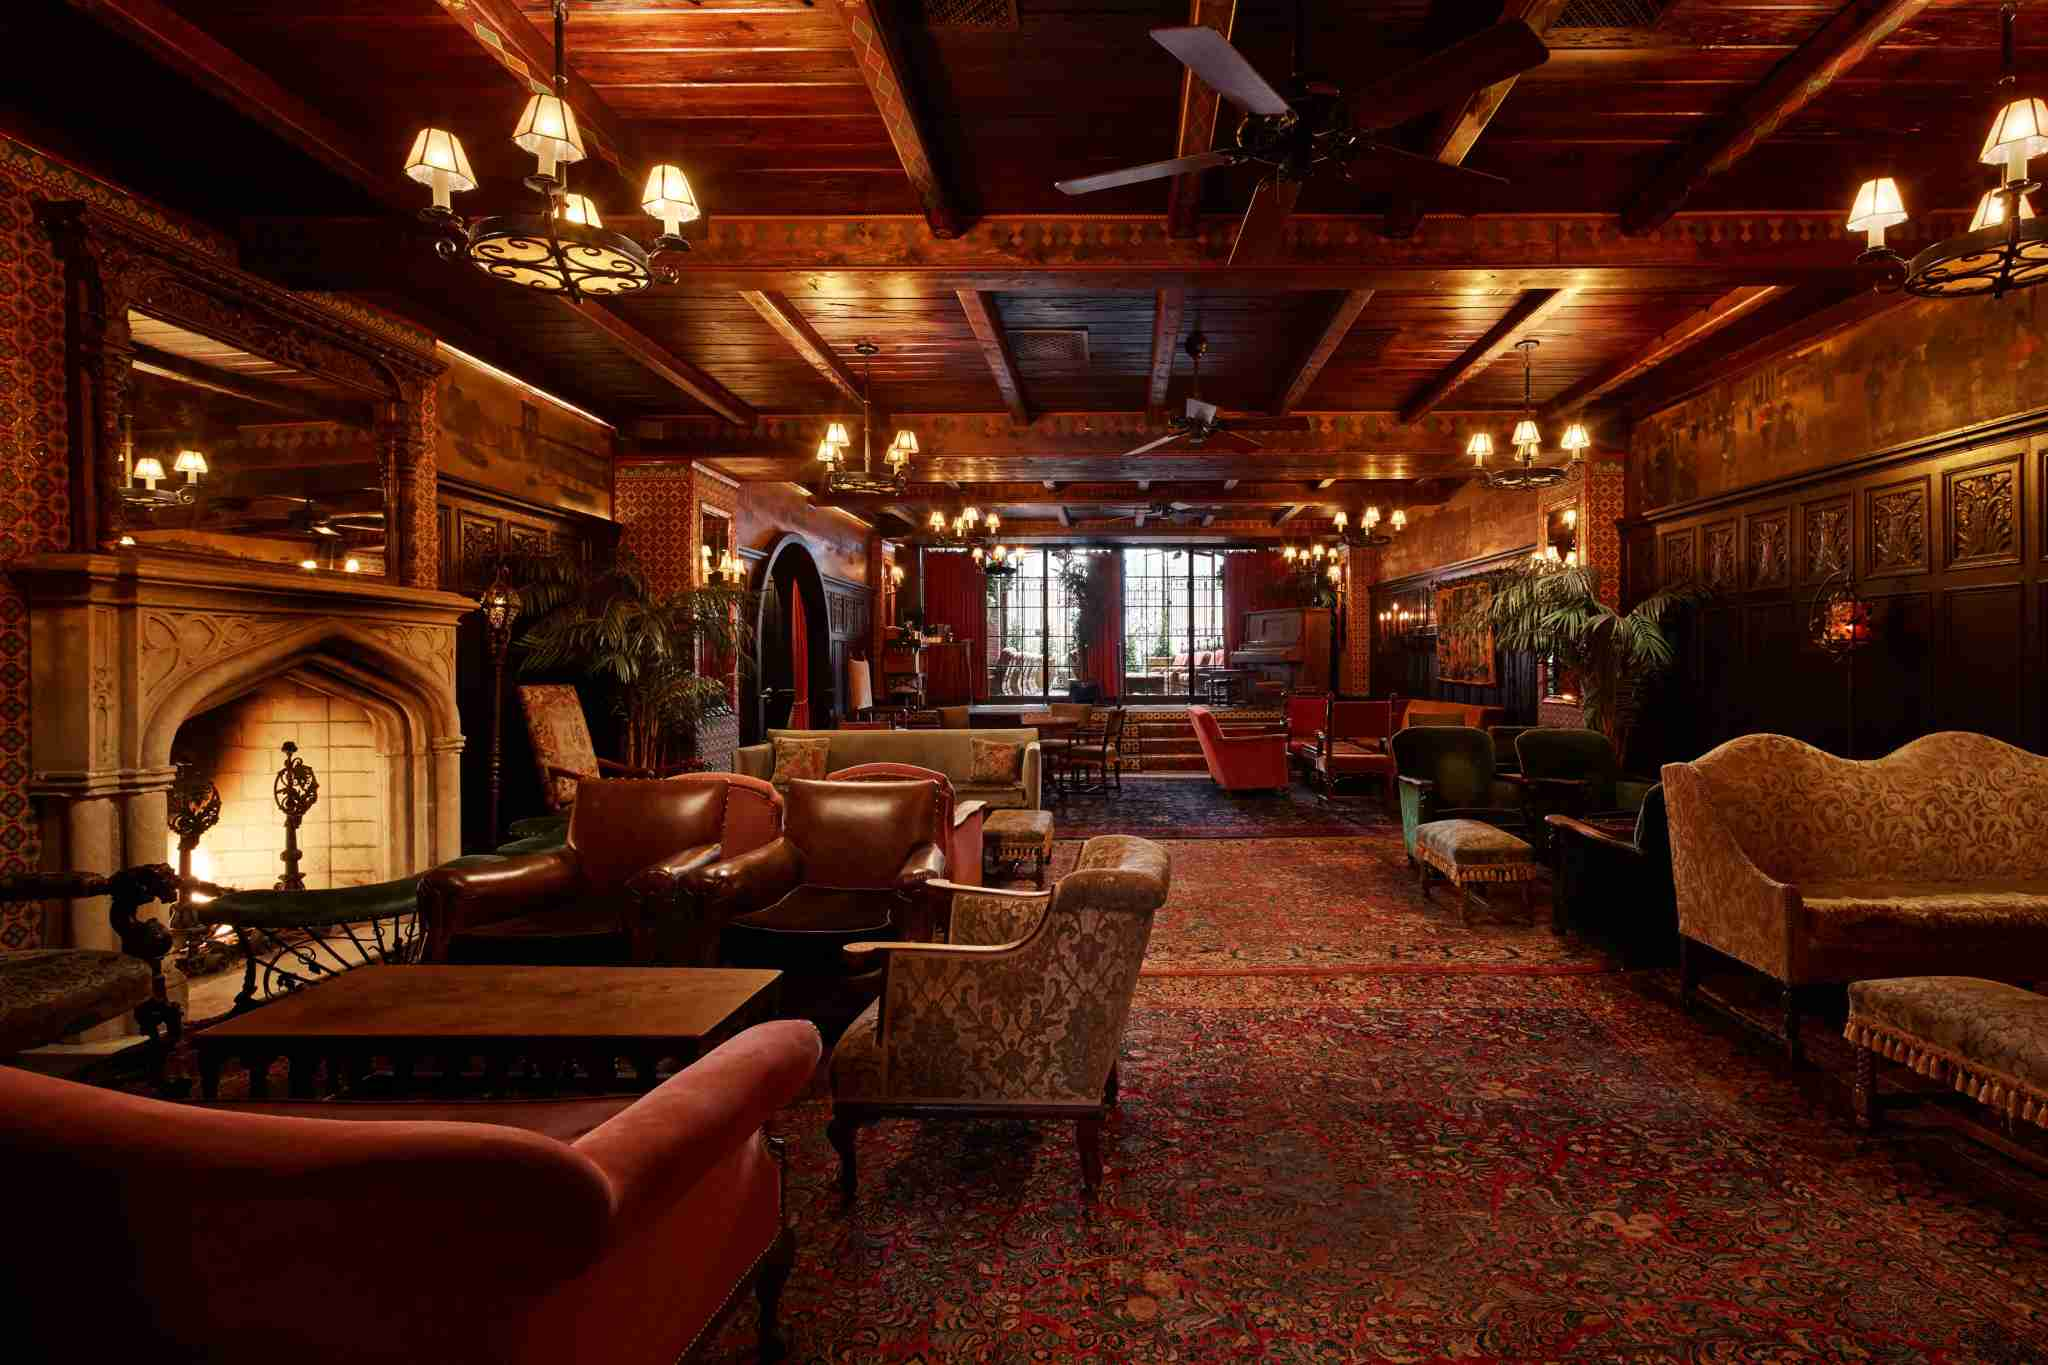 Photo by Annie Schlechter courtesy of the Bowery Hotel